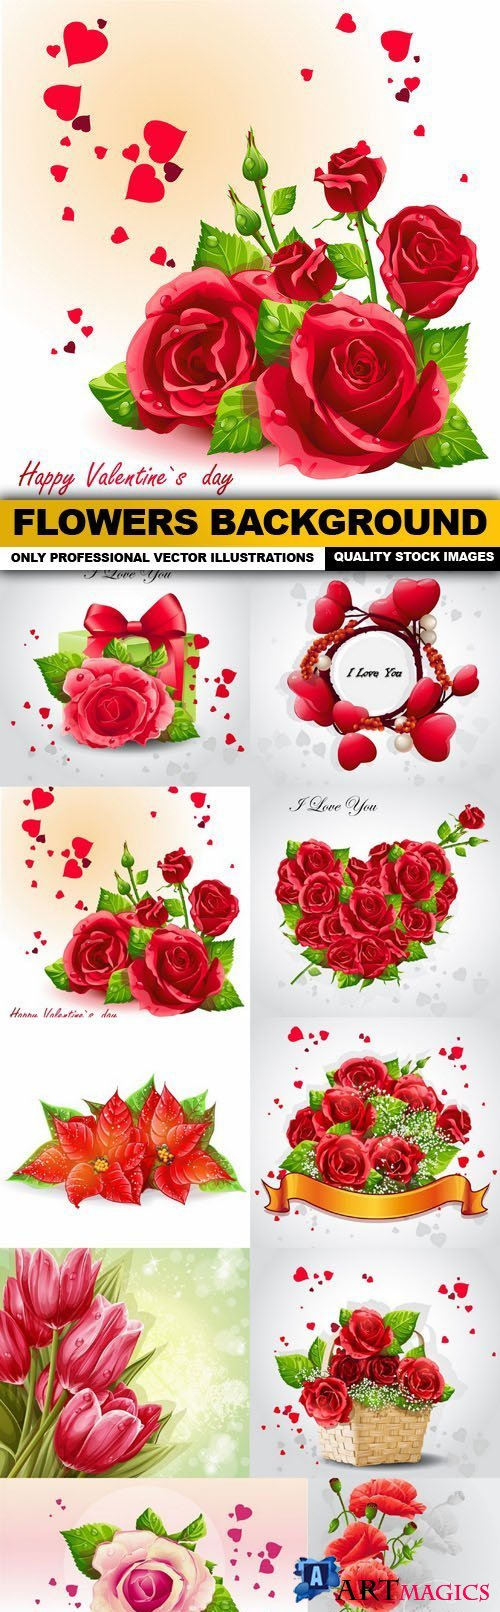 Flowers Background - 10 Vector